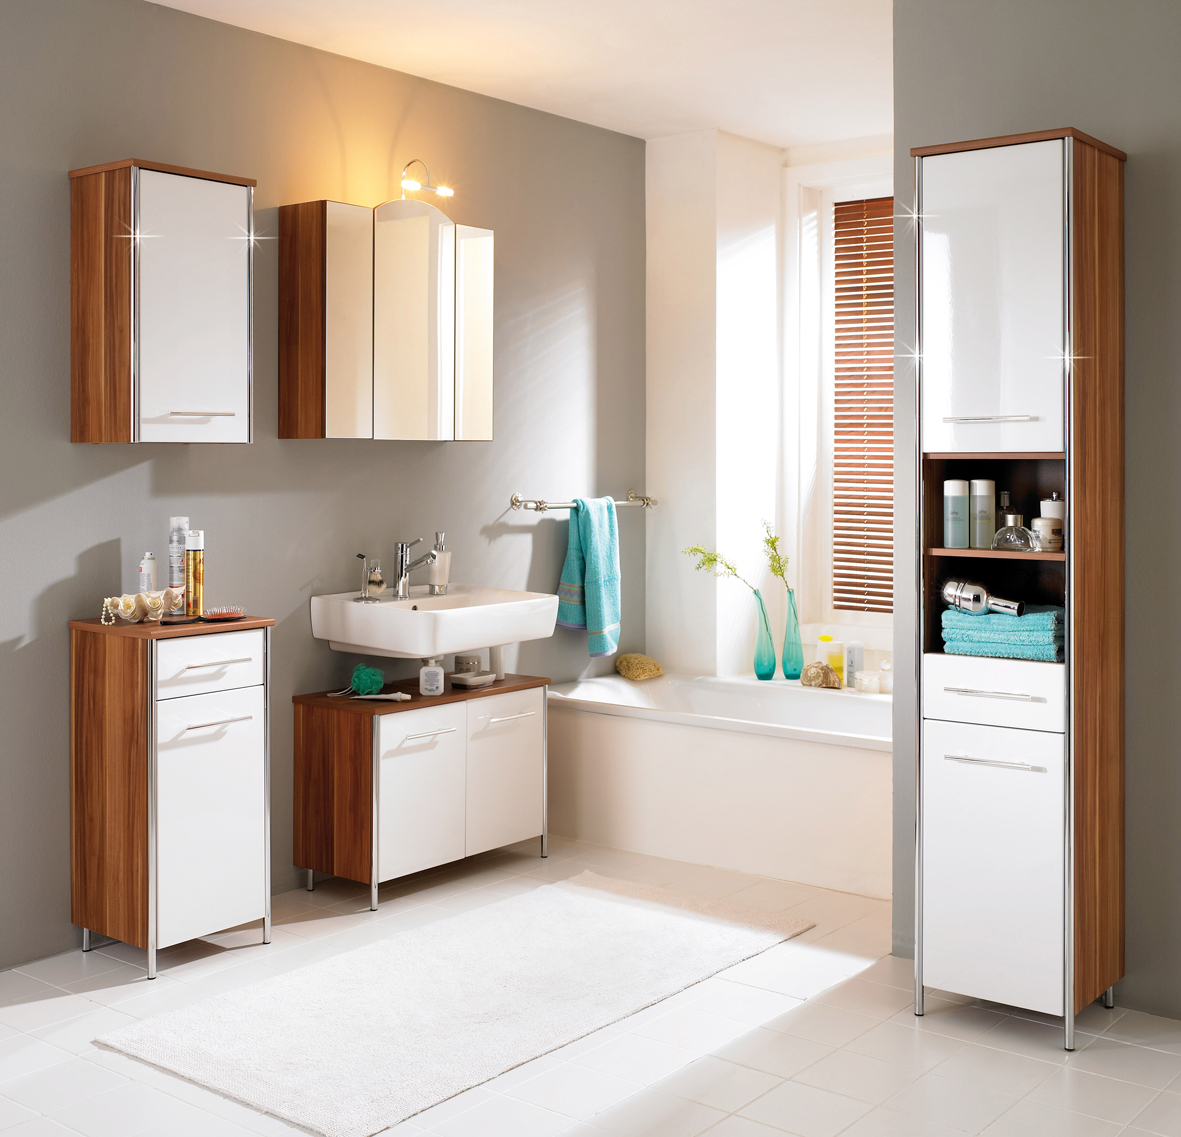 Bathroom Ideas: Keep Your Bathrooms Sparkling Clean